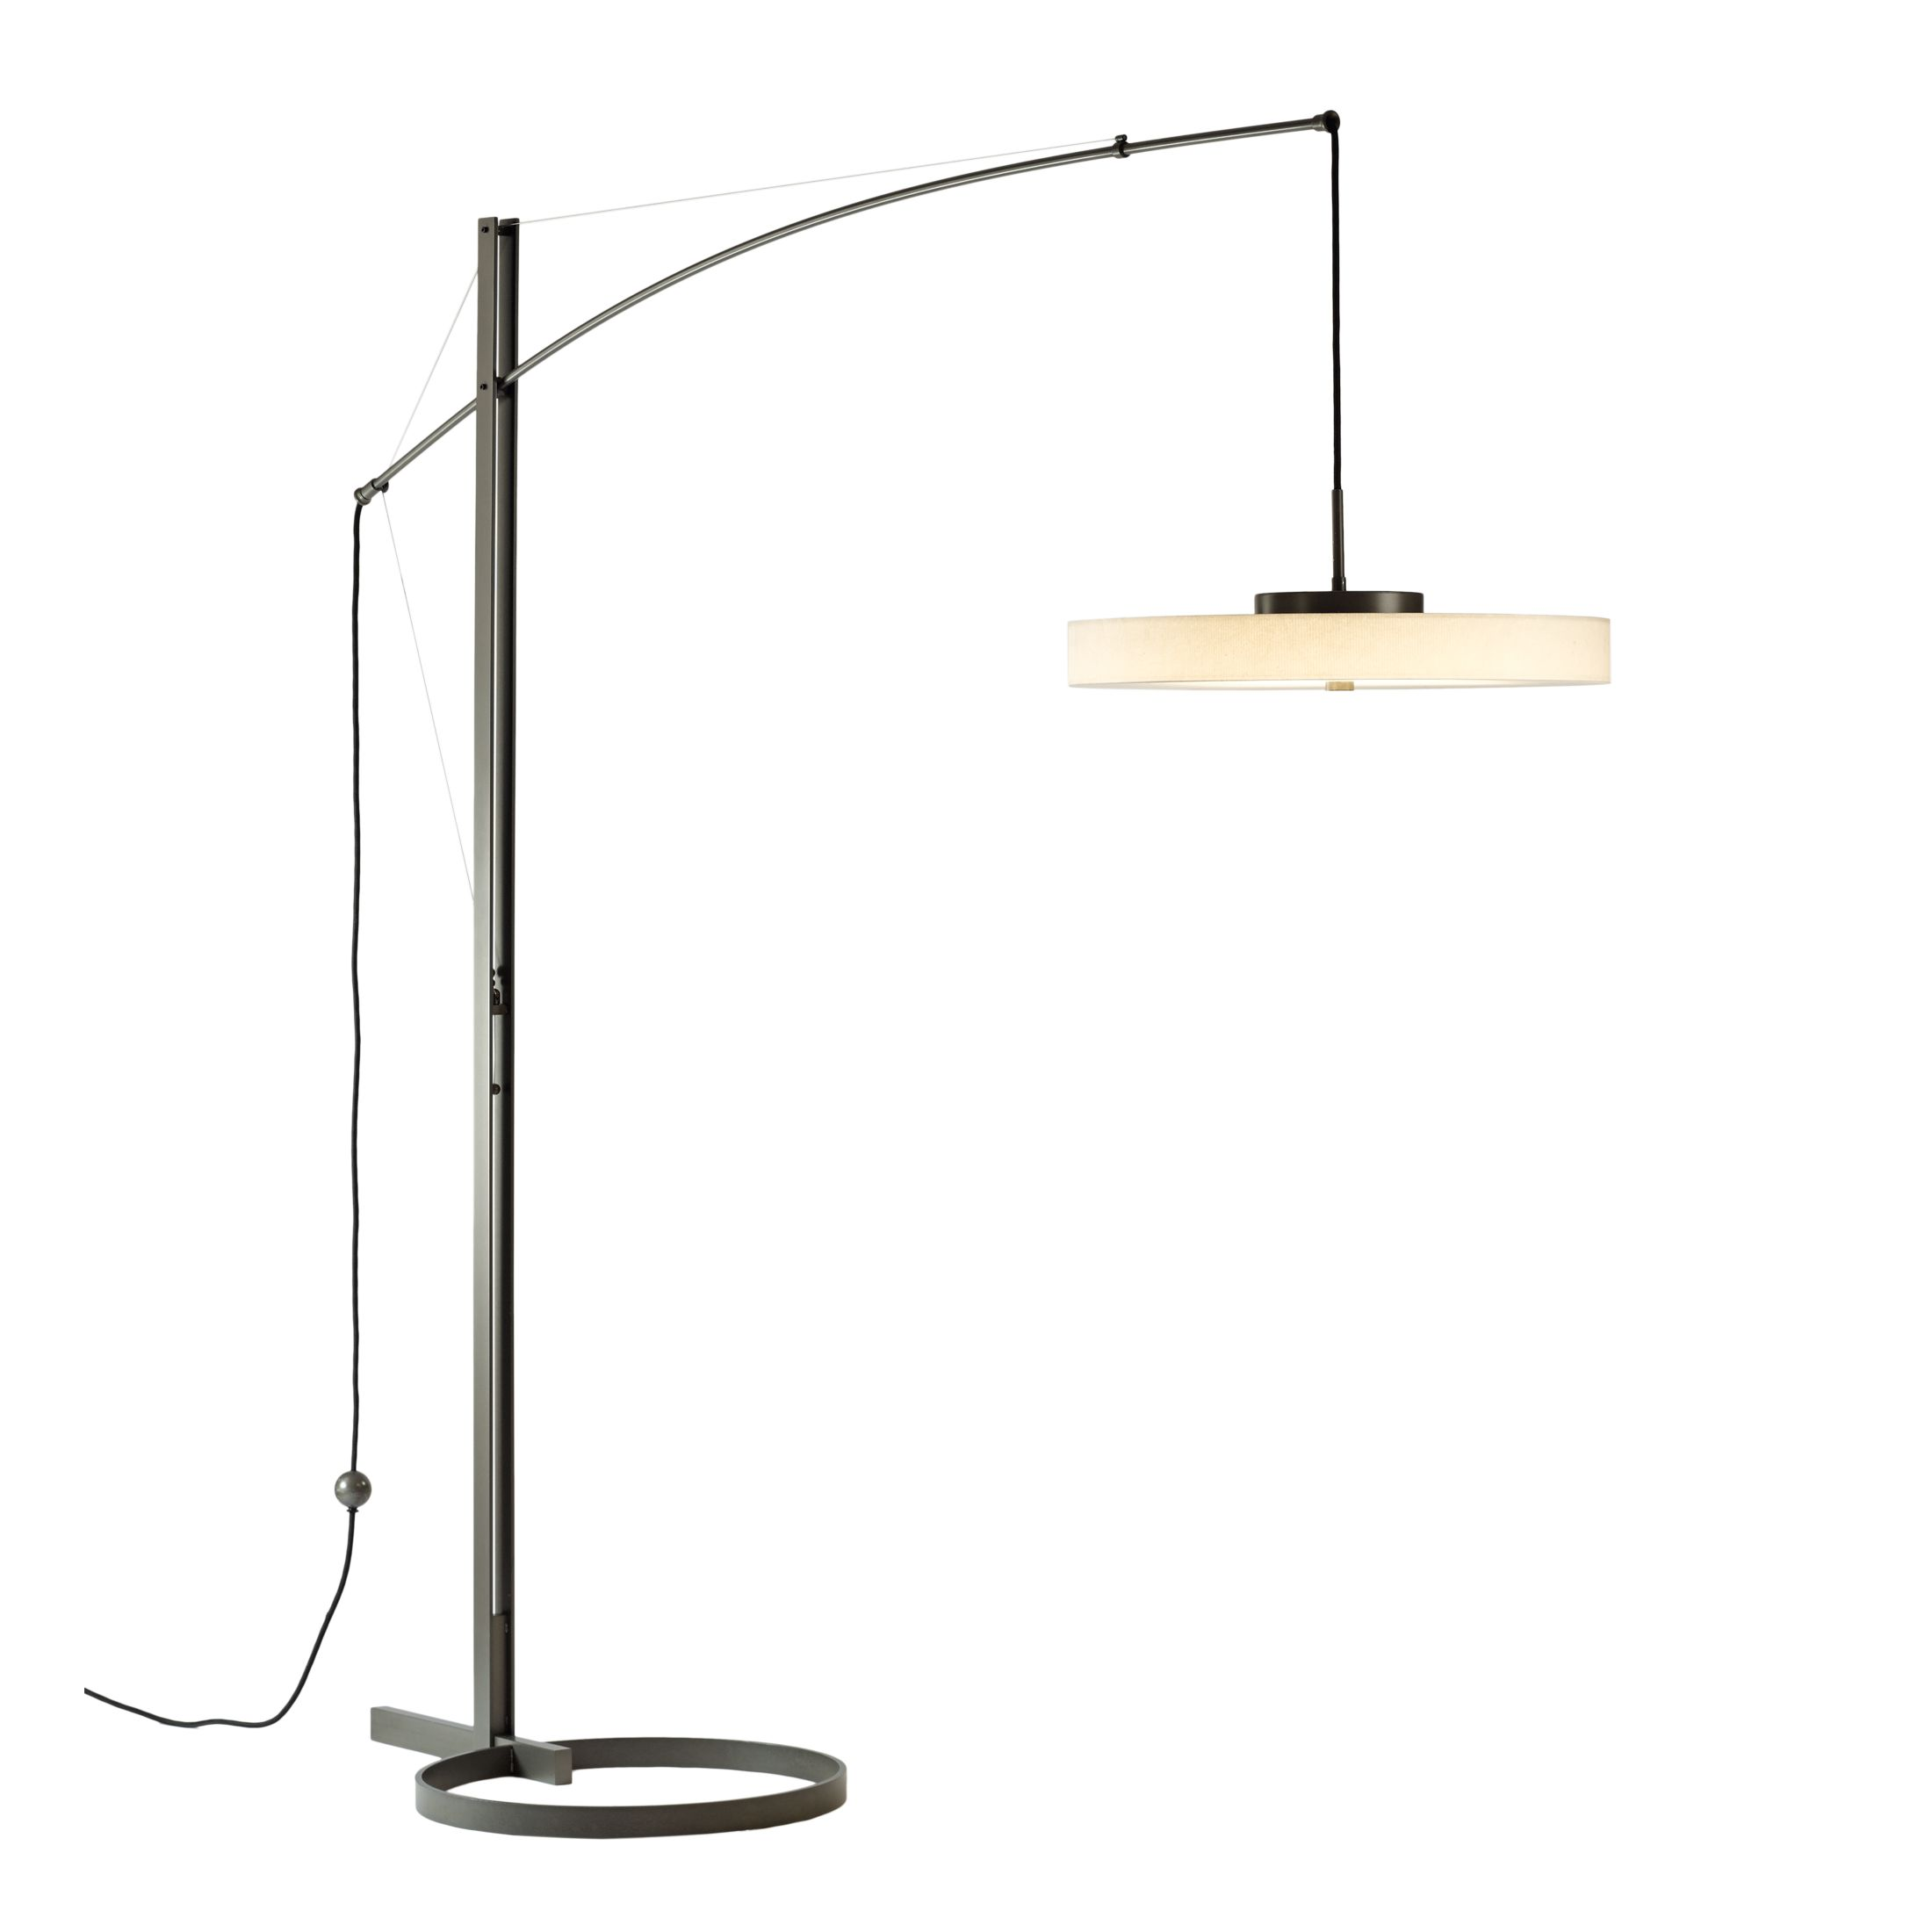 Thumbnail for Disq Arc LED Floor Lamp